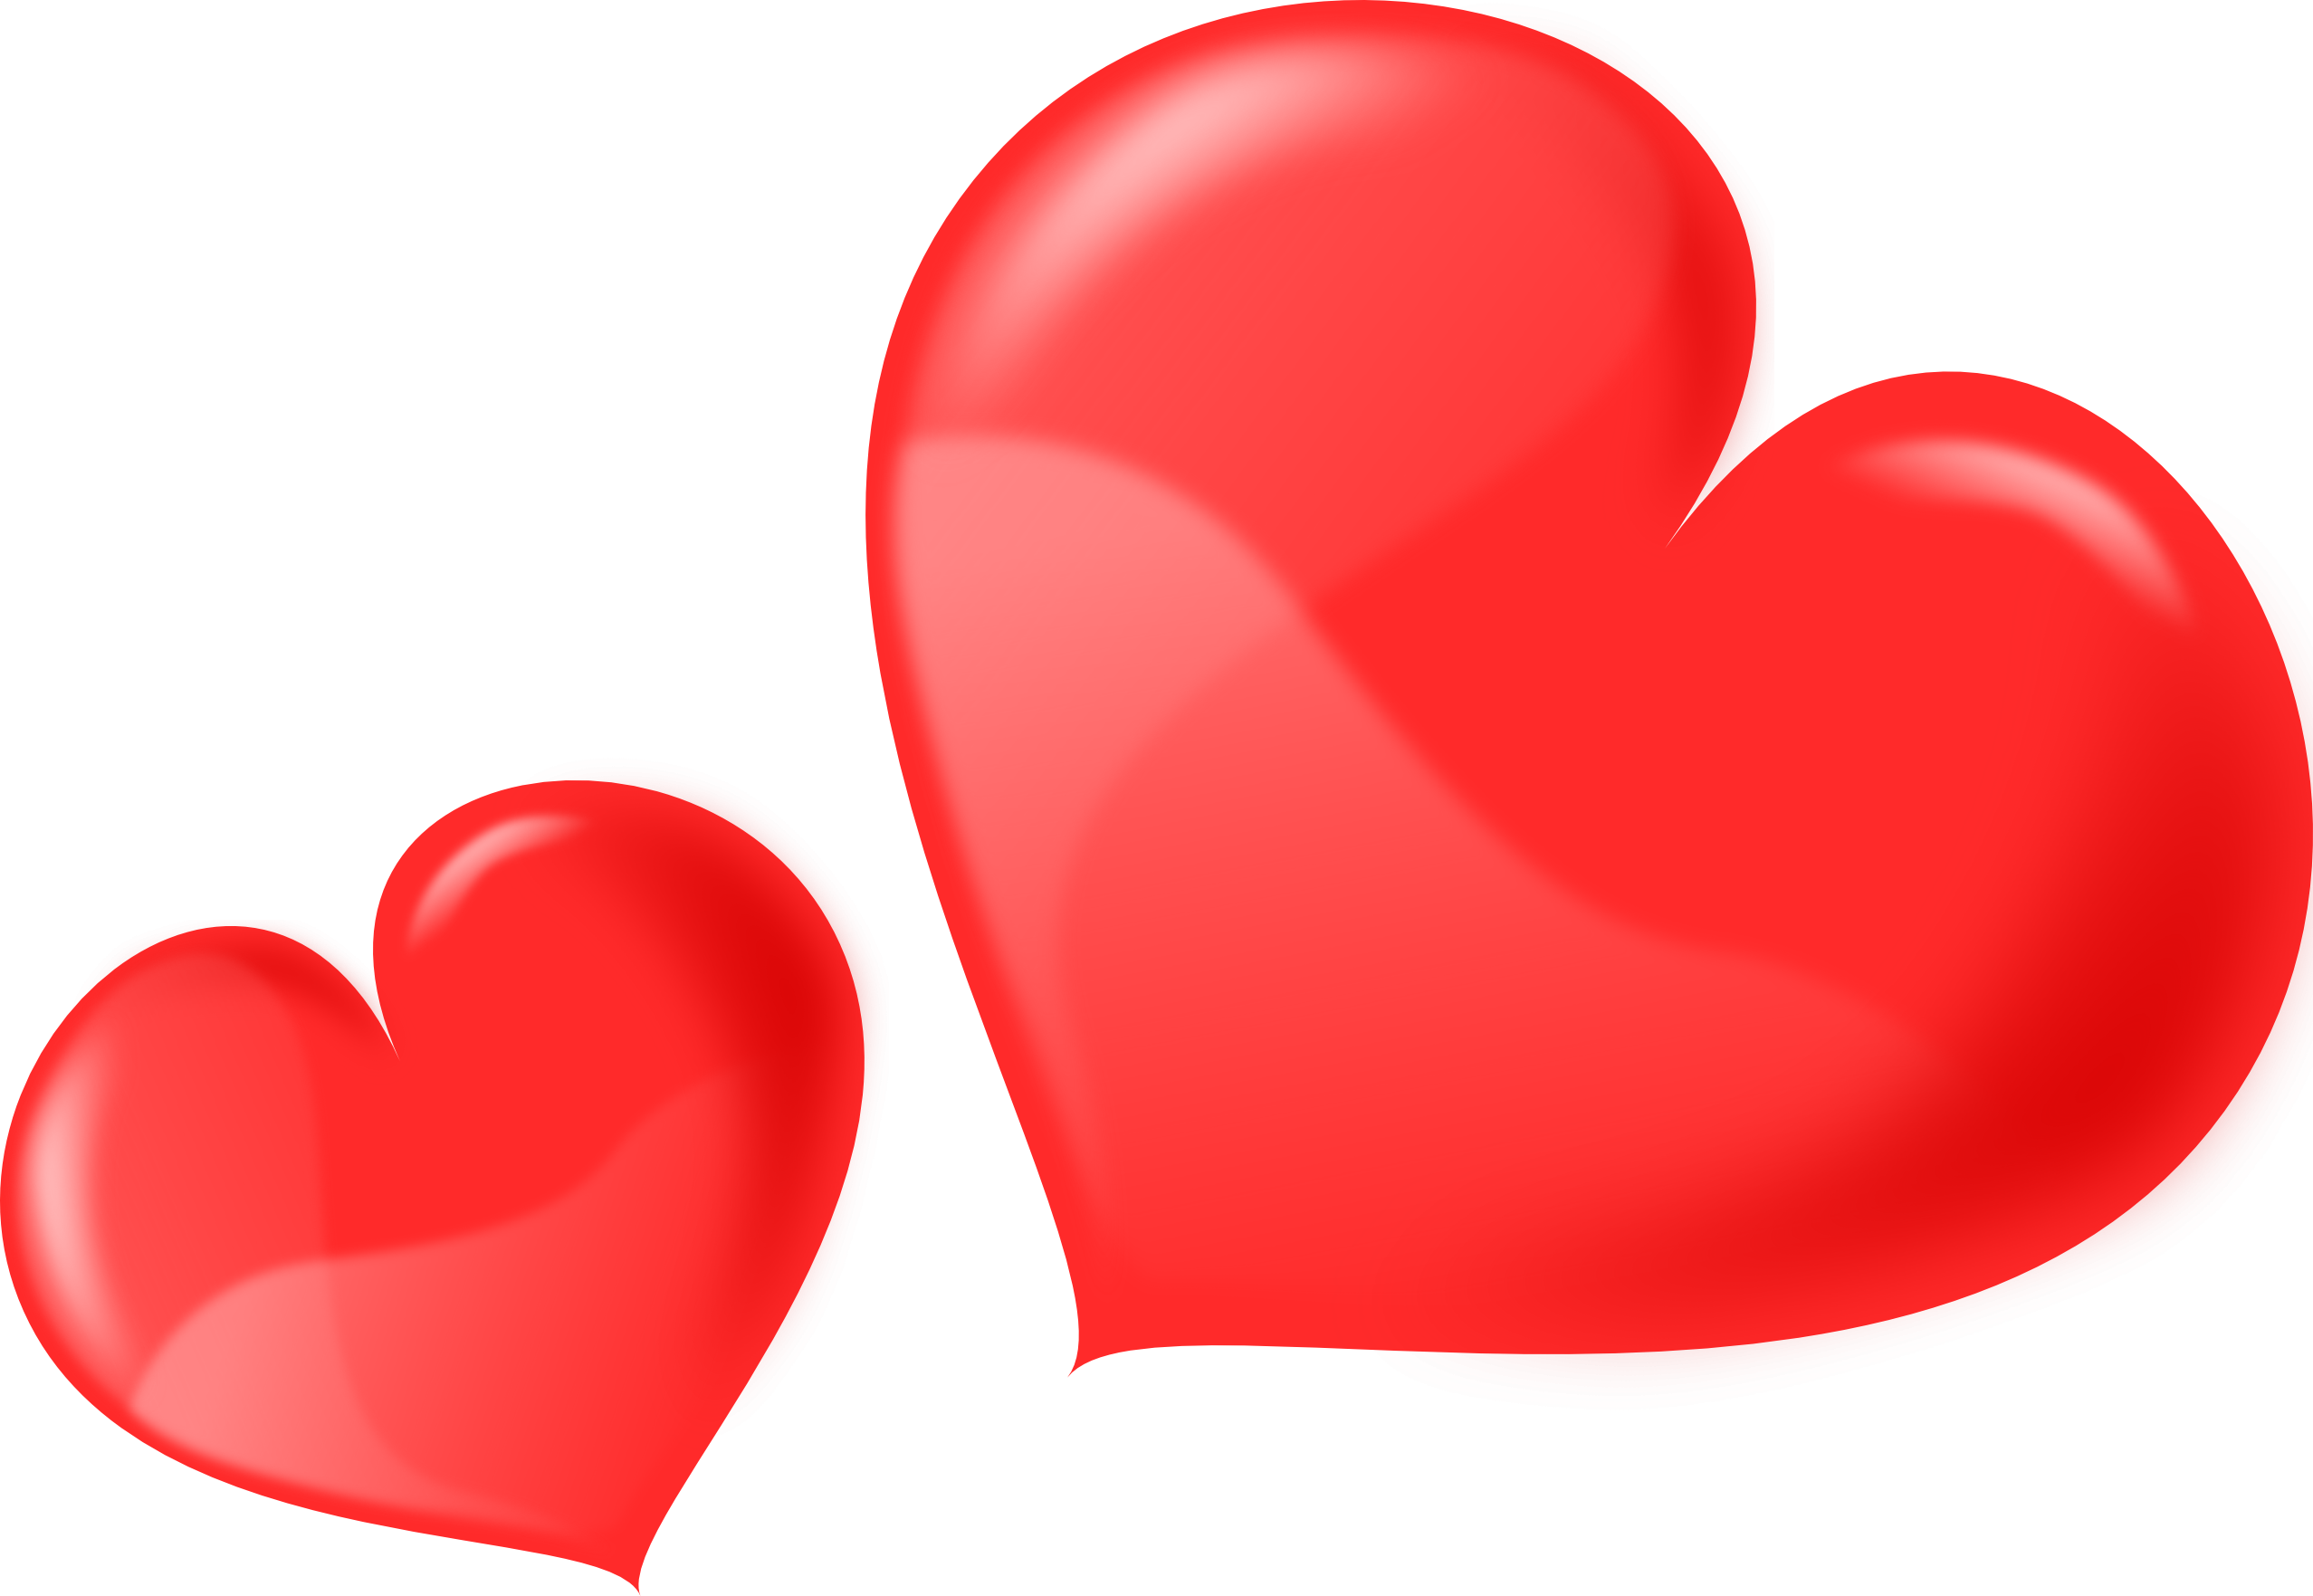 Heart Png Cute - Heart, Transparent background PNG HD thumbnail